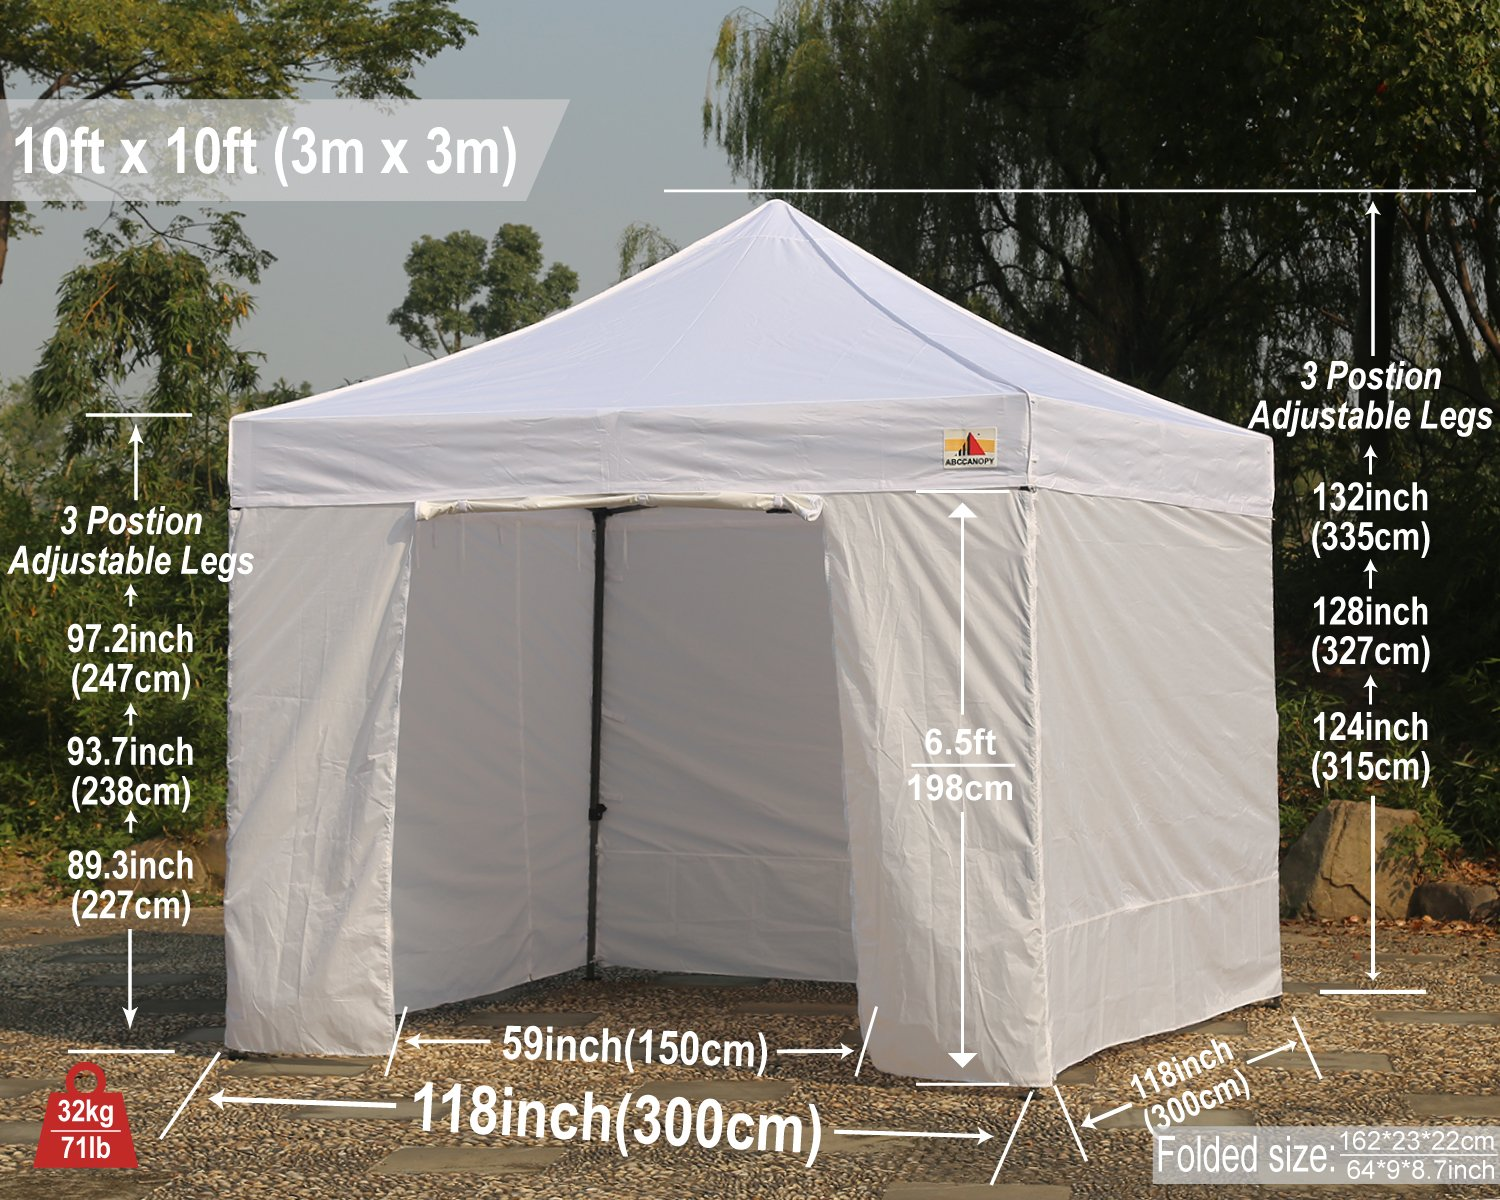 Abccanopy Deluxe 10x10 Instant Canopy Craft Display Tent Portable Booth Market Stall with Wheeled Carry Bag , Bonus 4x Weight Bag by ABCCANOPY (Image #8)